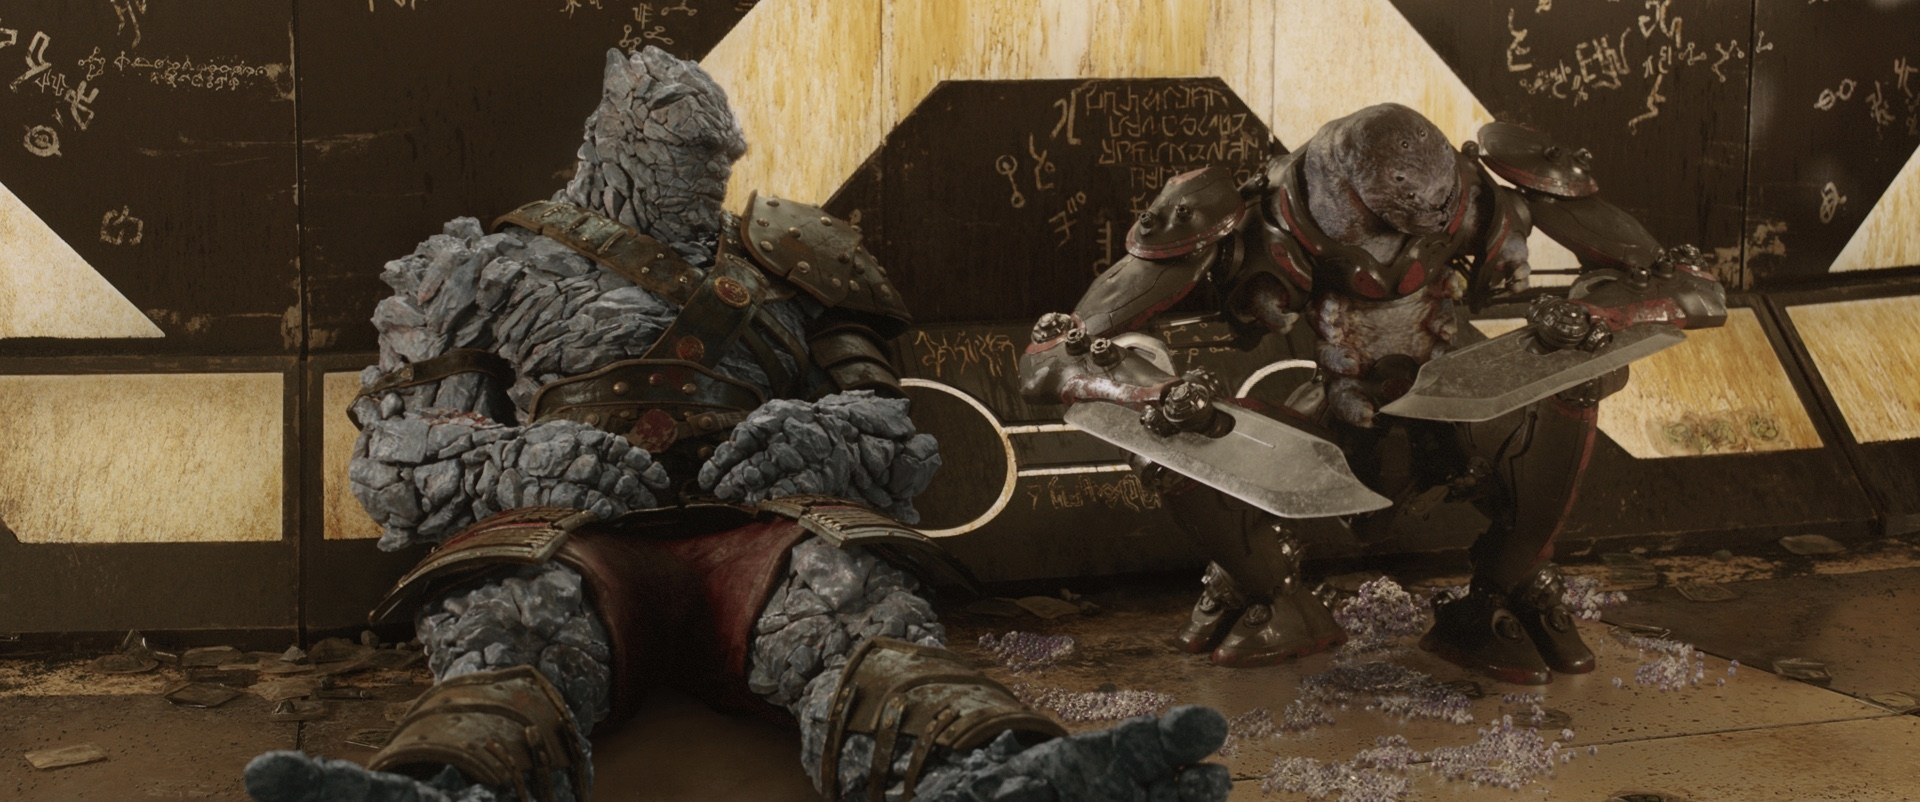 Avengers Endgame Supervisors Desired a Bro Thor, Korg, and Miek Series